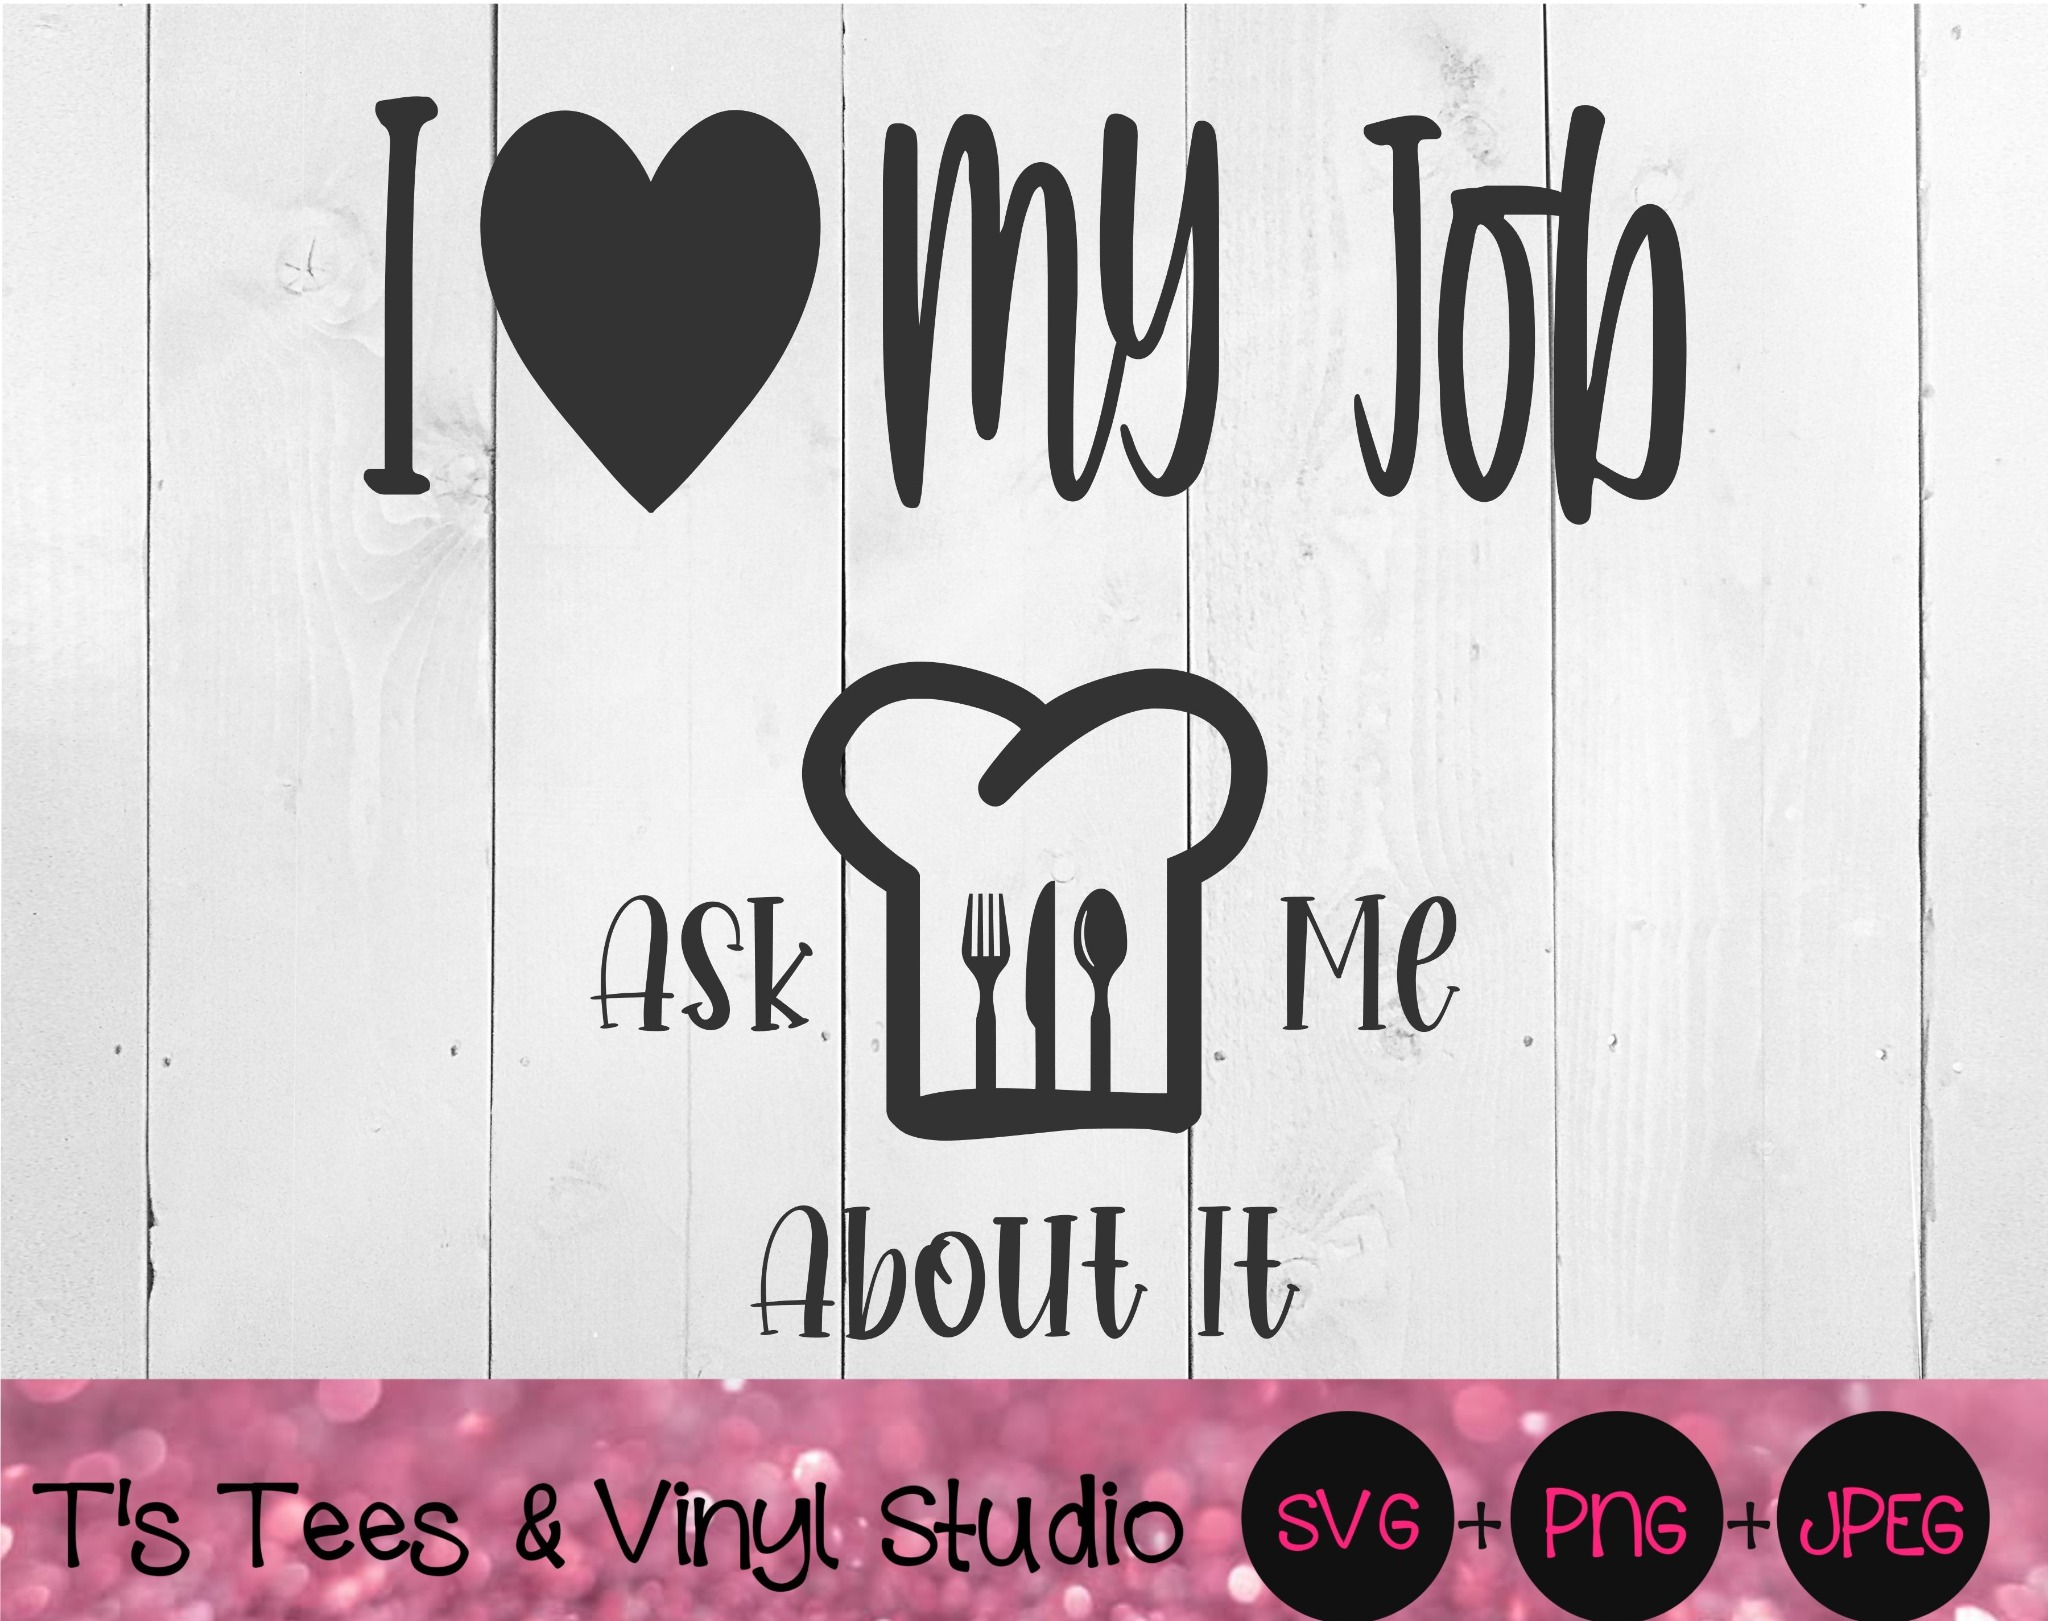 I Love My Job, Ask Me About It, Chef Svg, Direct Sales, Cook, Kitchen, Self Employed, Promote Busine